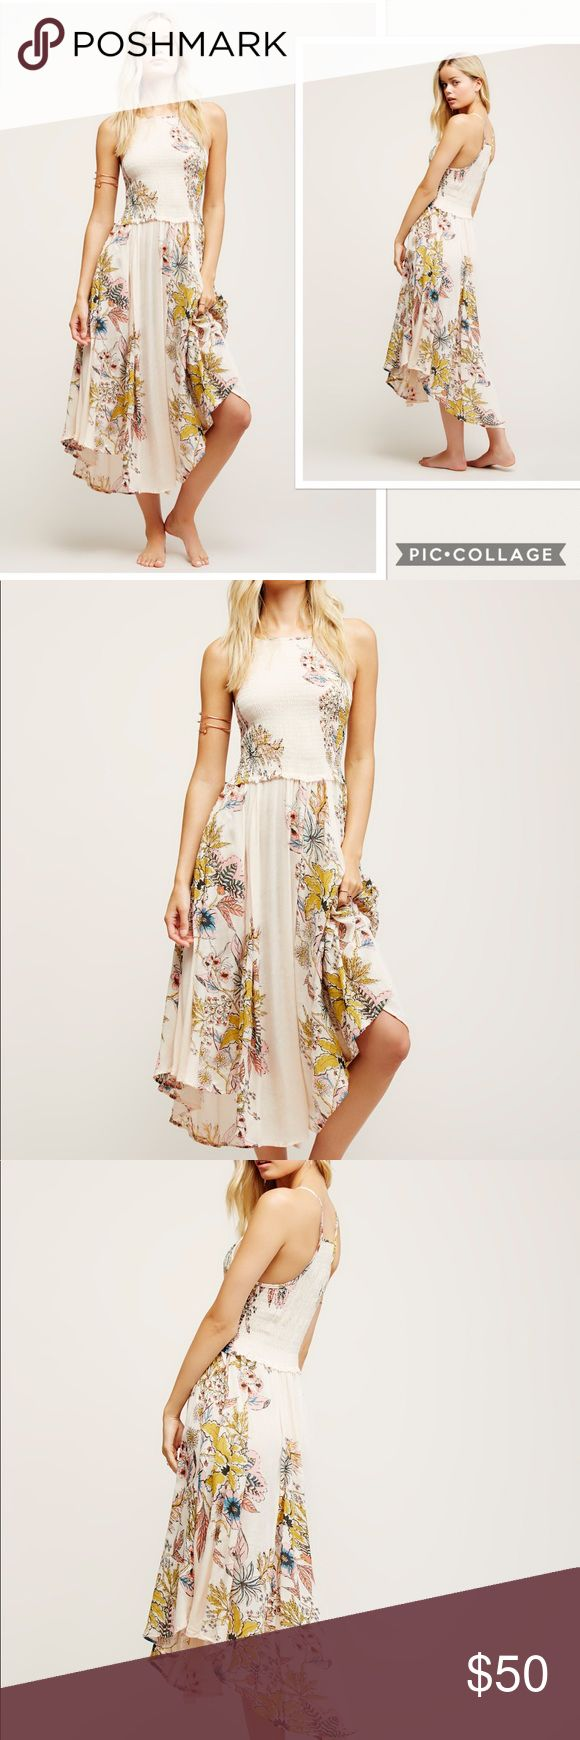 """NWT Free People Season In The Sun Maxi Dress Style No. 40256547 ; Color Code:  Effortless printed midi slip featuring a high neckline and racerback detail. Smocked bodice and breezy skirt make for an easy fit and flowing silhouette. Exposed seam detail creates a lived-in look. Semi-sheer bottom.  Care/Import #121  Hand Wash Cold Separately  Import  Measurements for size Large  Bust: 30""""  Waist: 28""""  Length: 44.75 in Contents  30% Silk 70% Cotton Free People Dresses Maxi"""